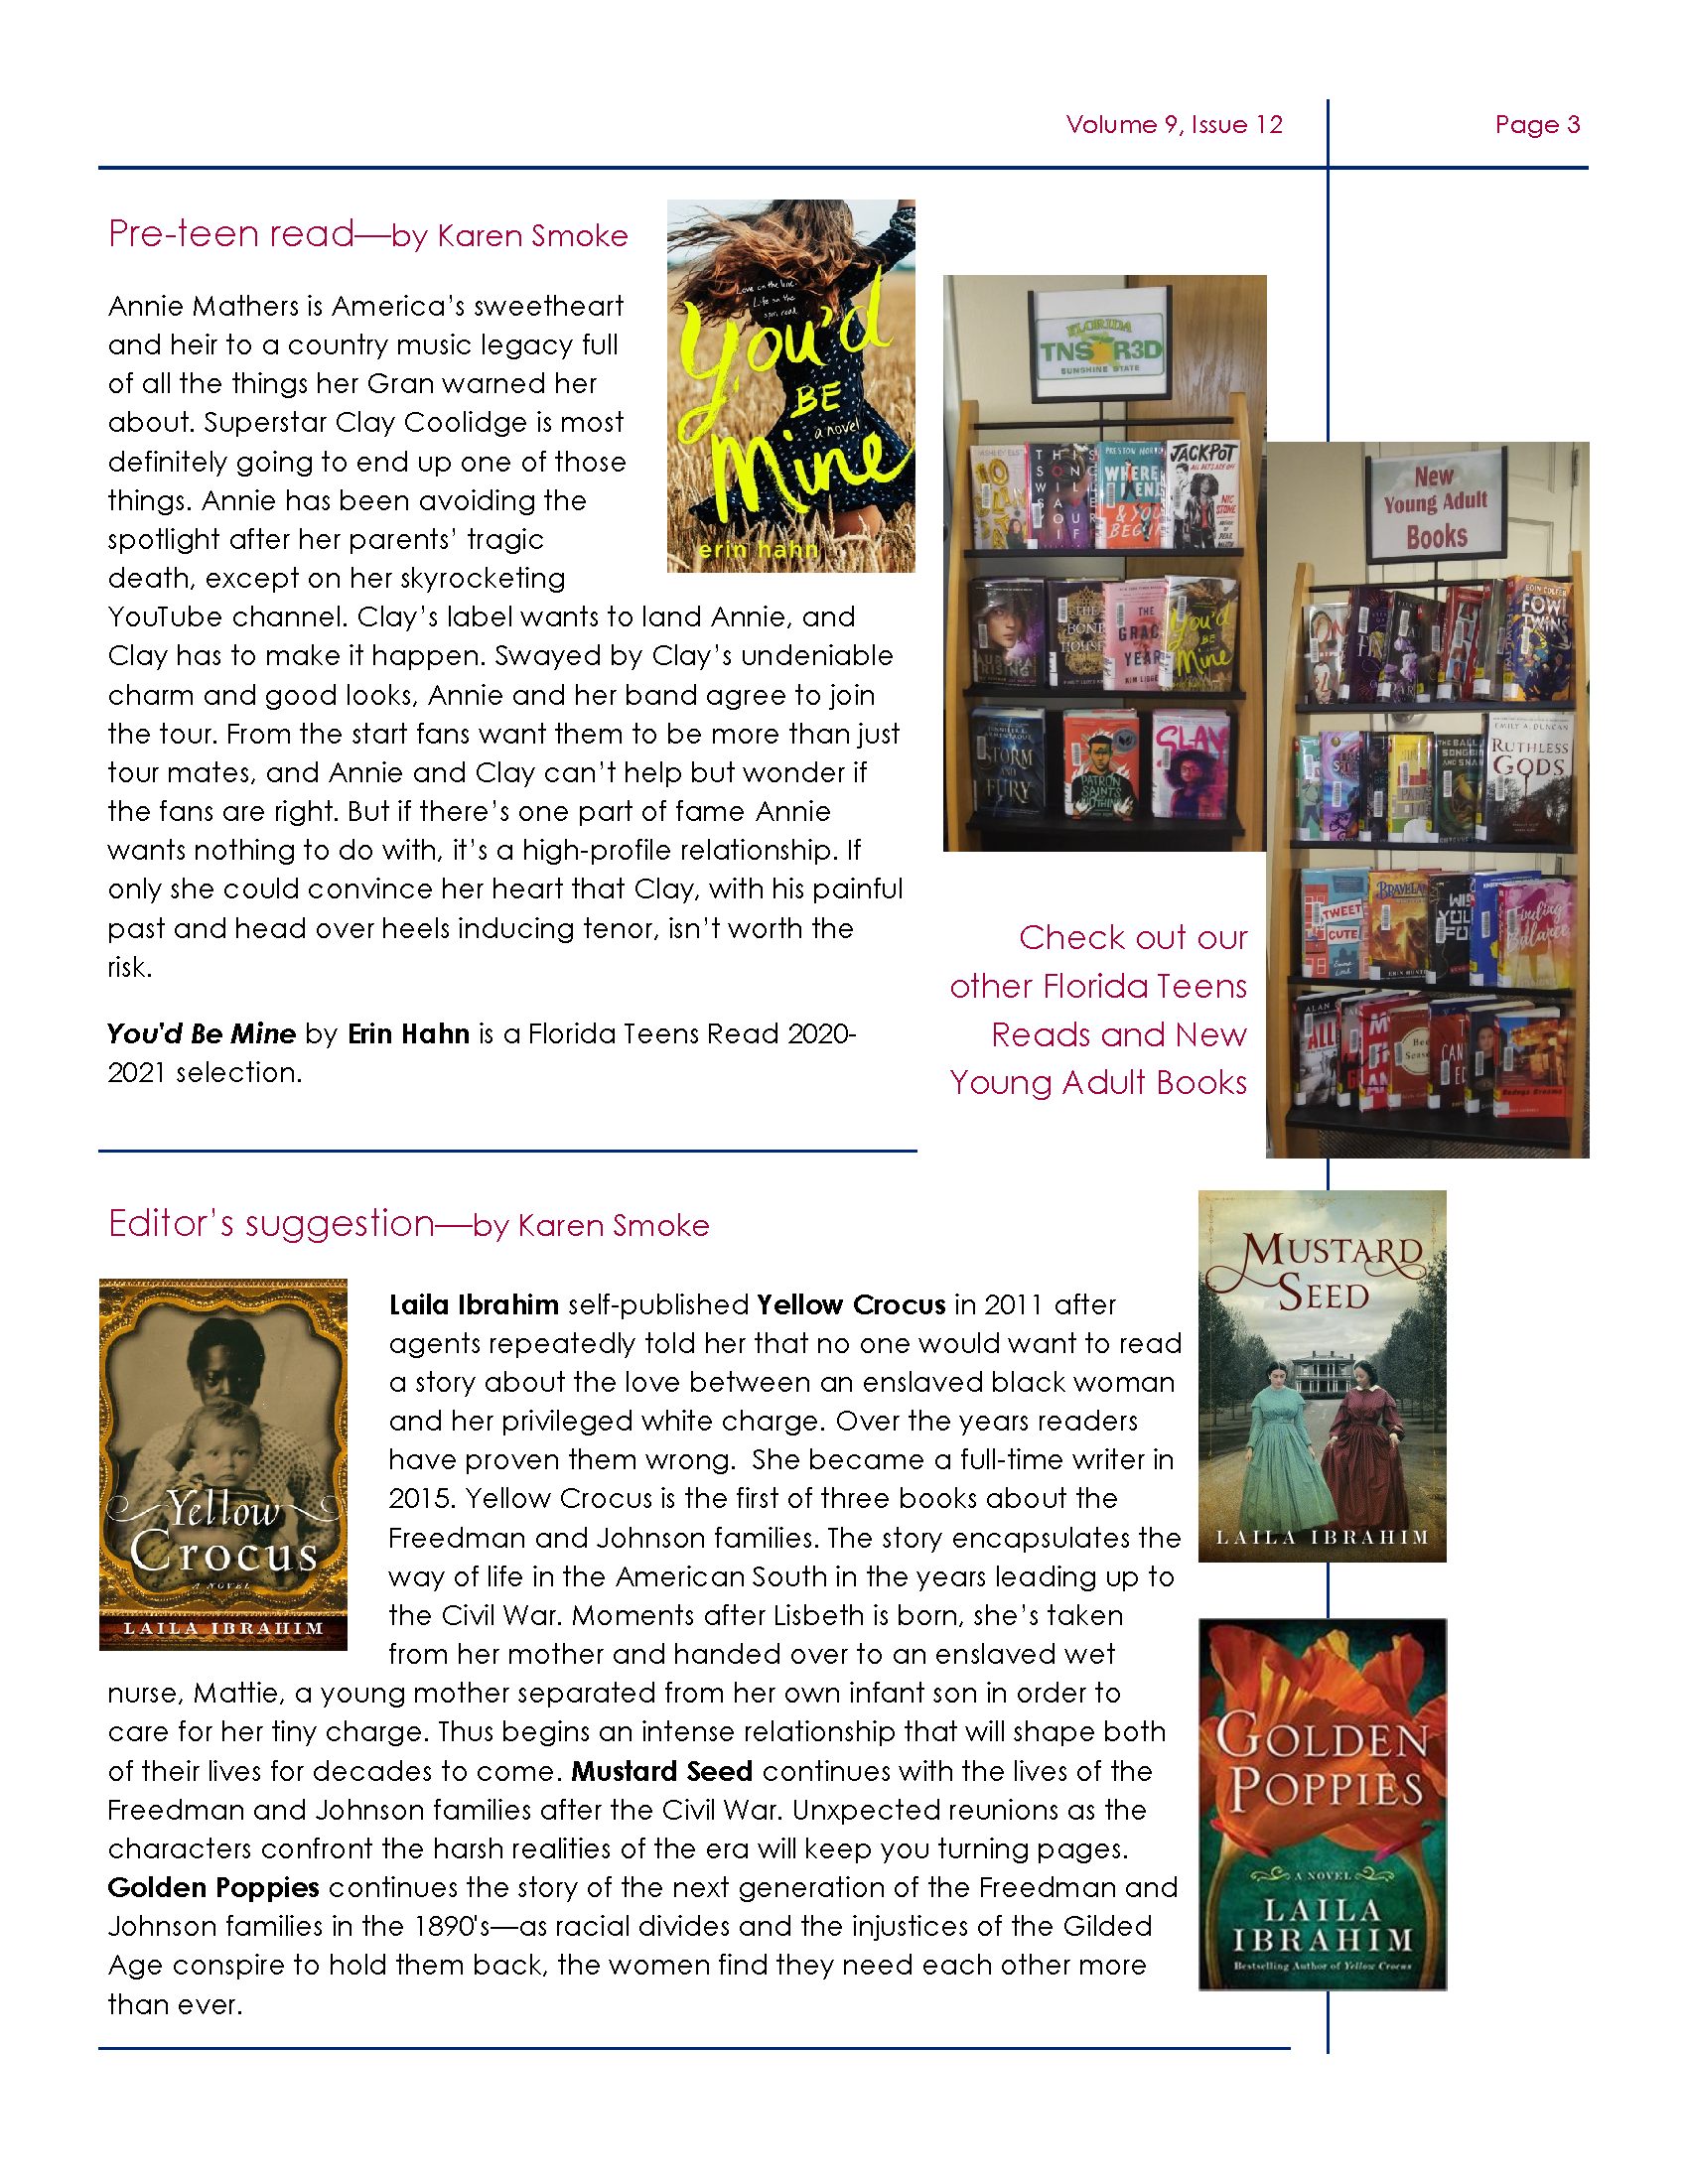 Page three of Friends of DeSoto County Library Association December Newsletter. Downloadable PDF available by clicking link before first  image.